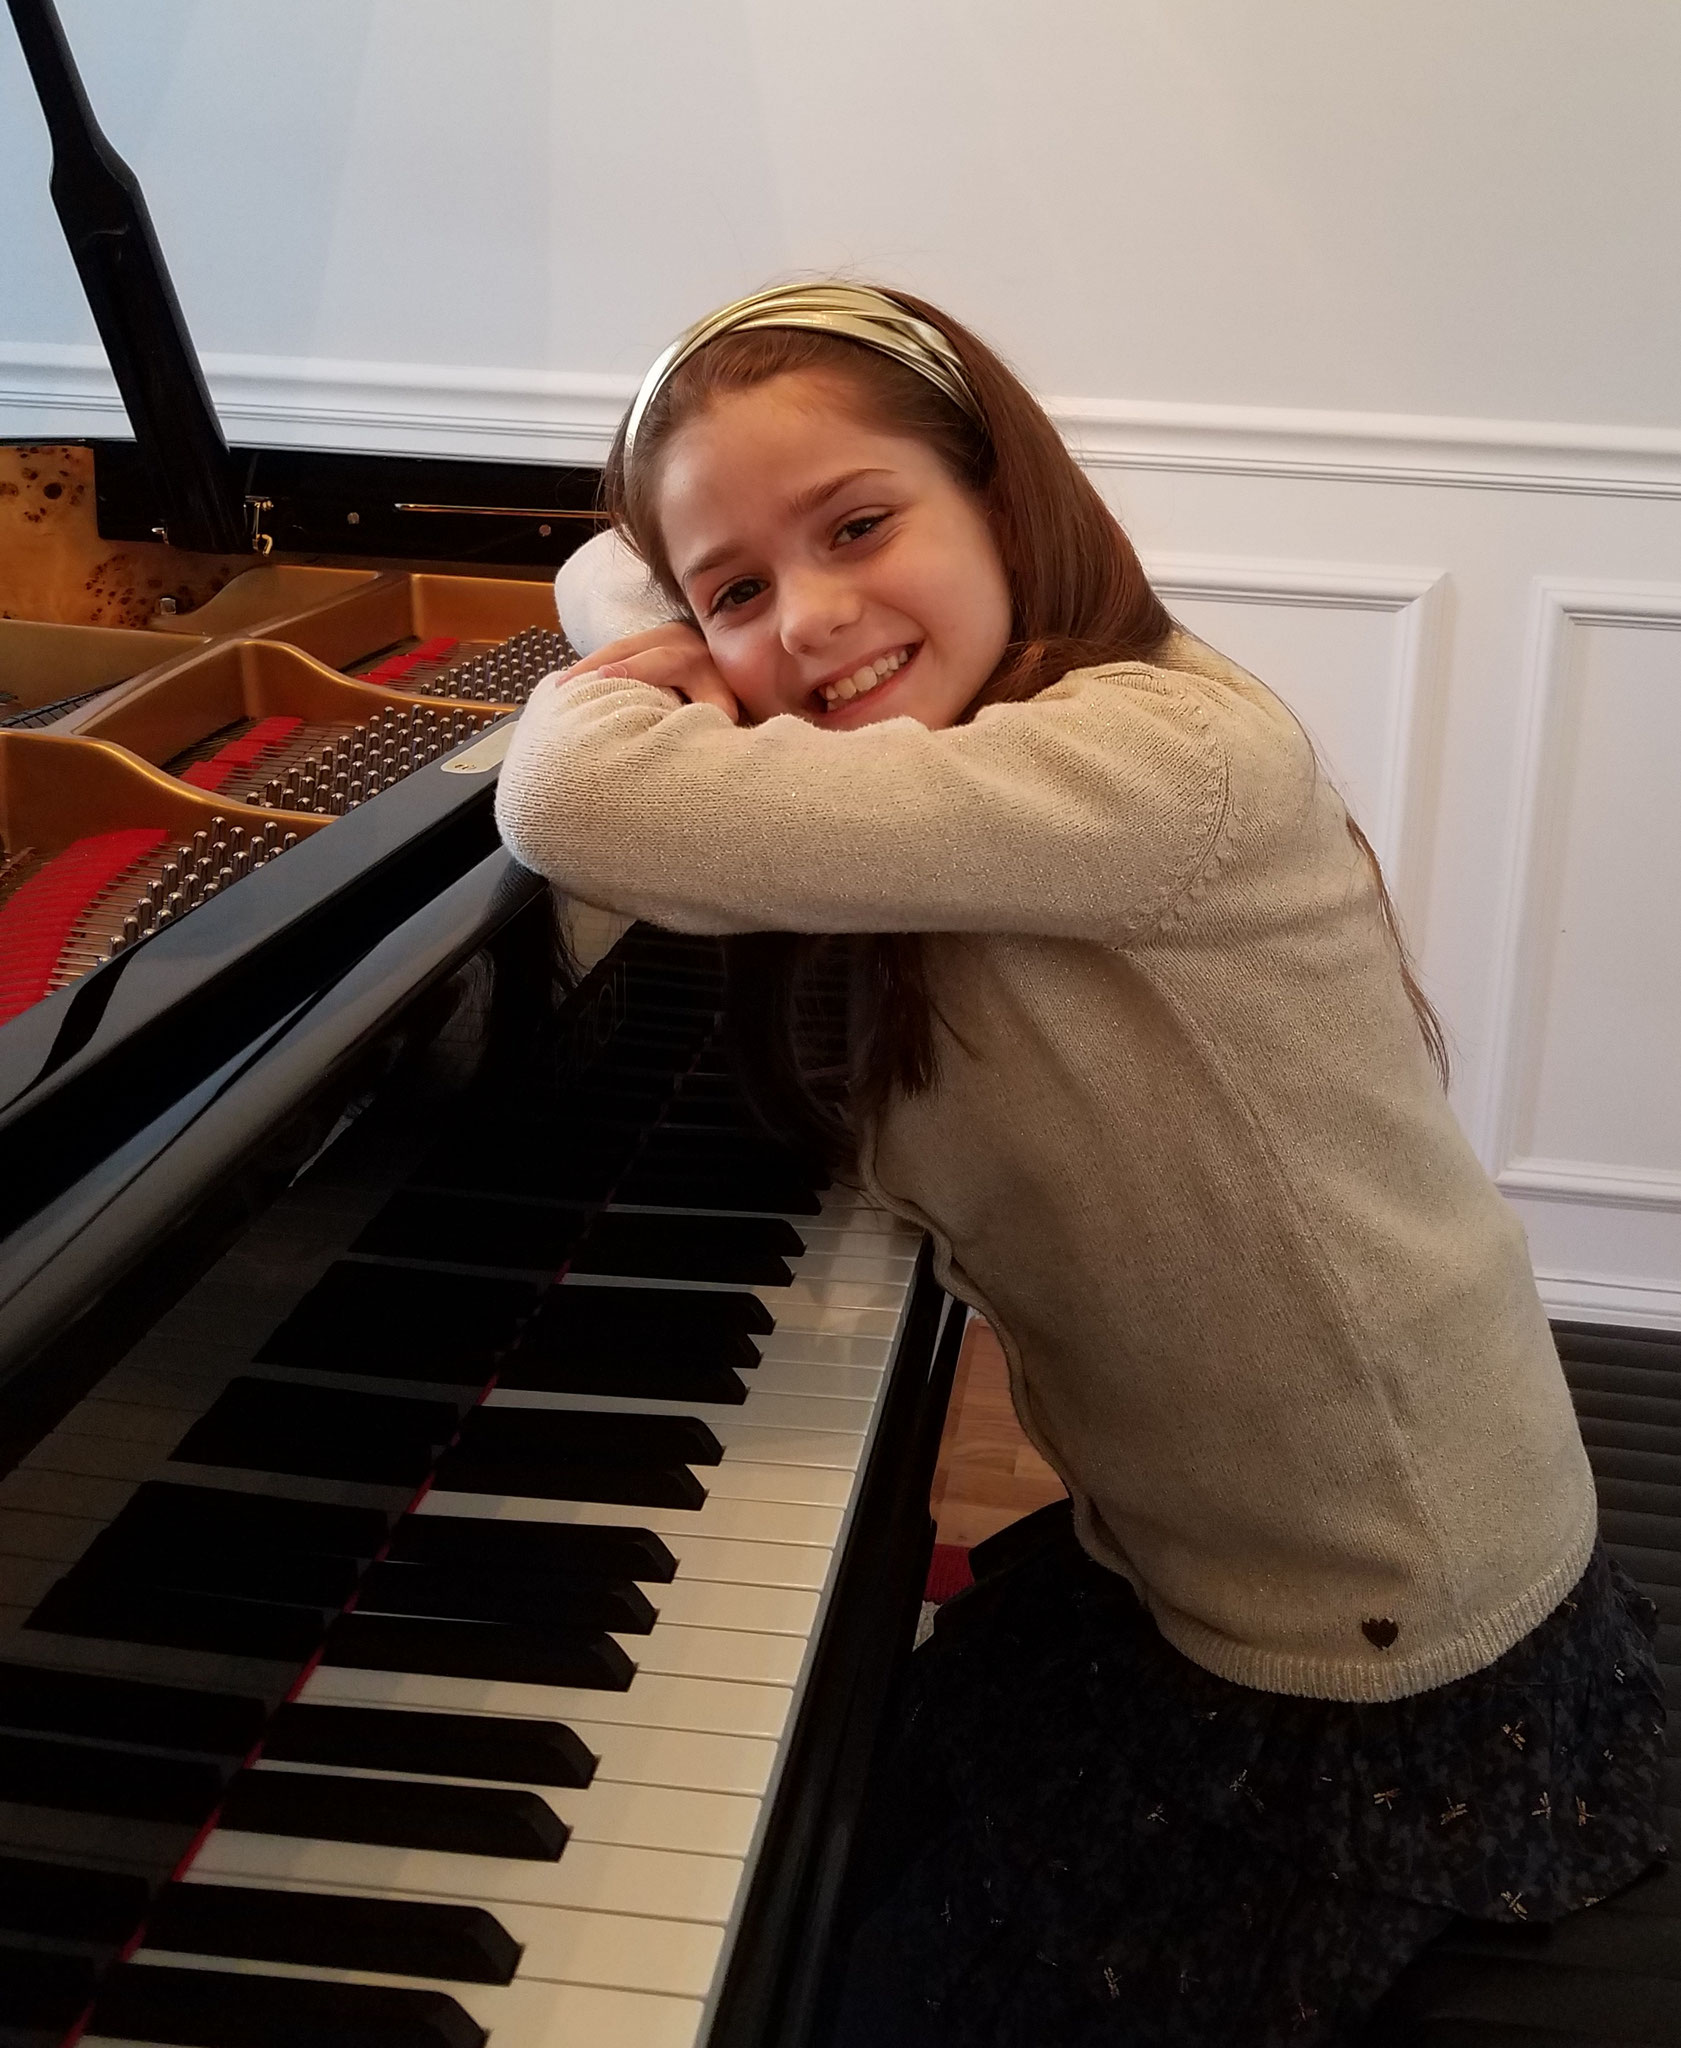 ANNA PLANO PASSED THE RSCM AMERICA EXAM 1st LEVEL! Holliston, MA - USA